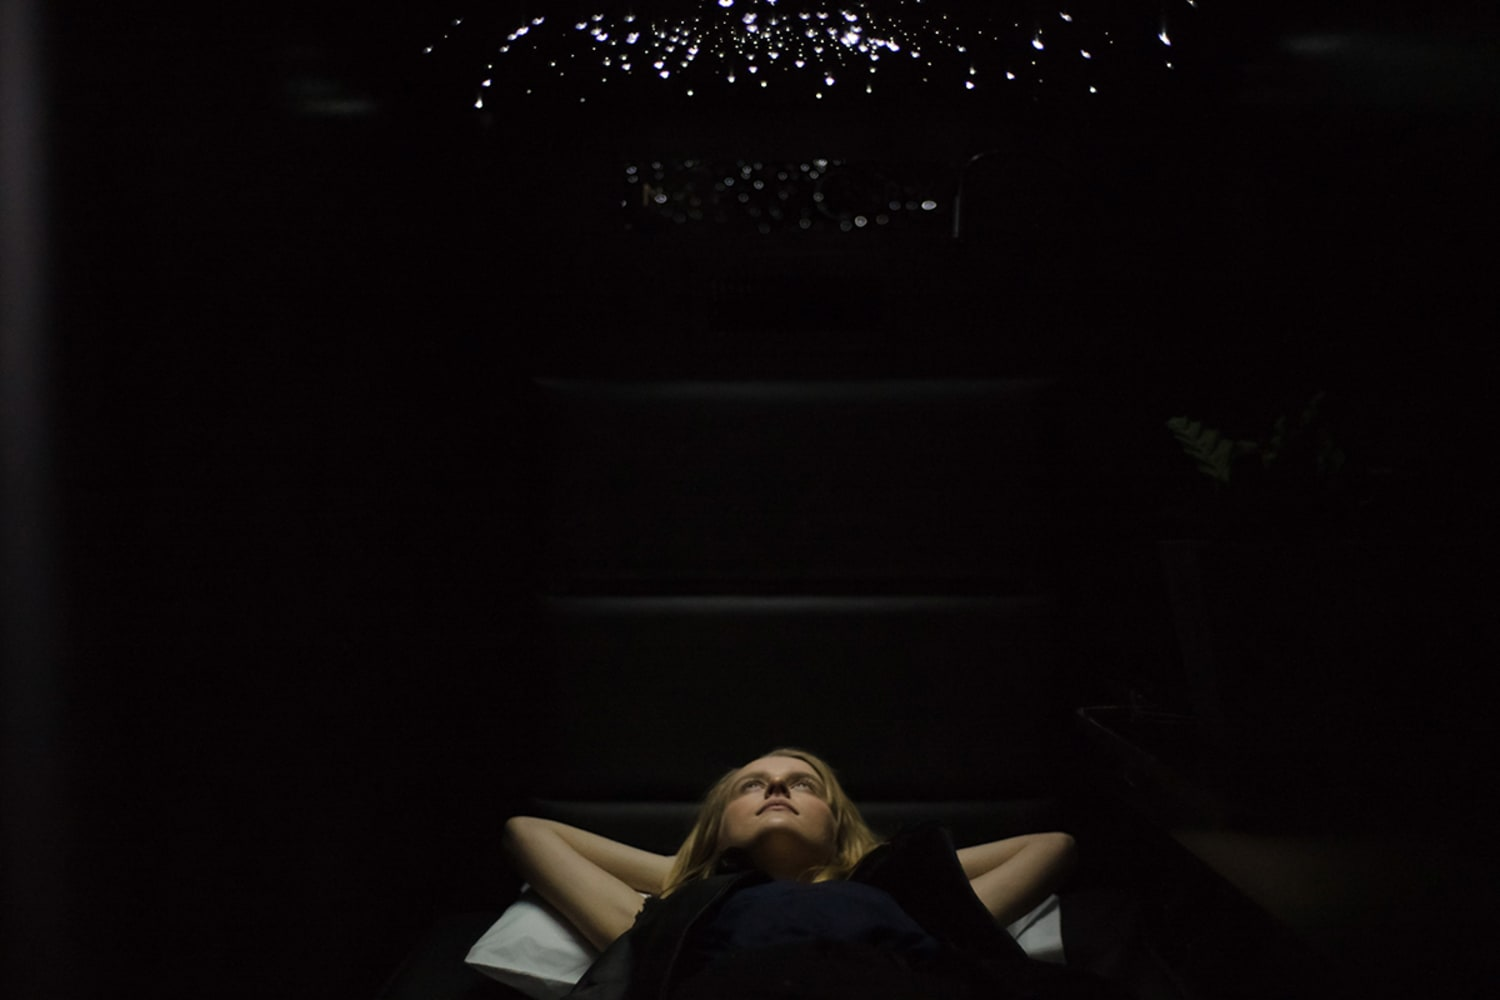 JWT Nap York is the only place where you can sleep under the stars in NYC